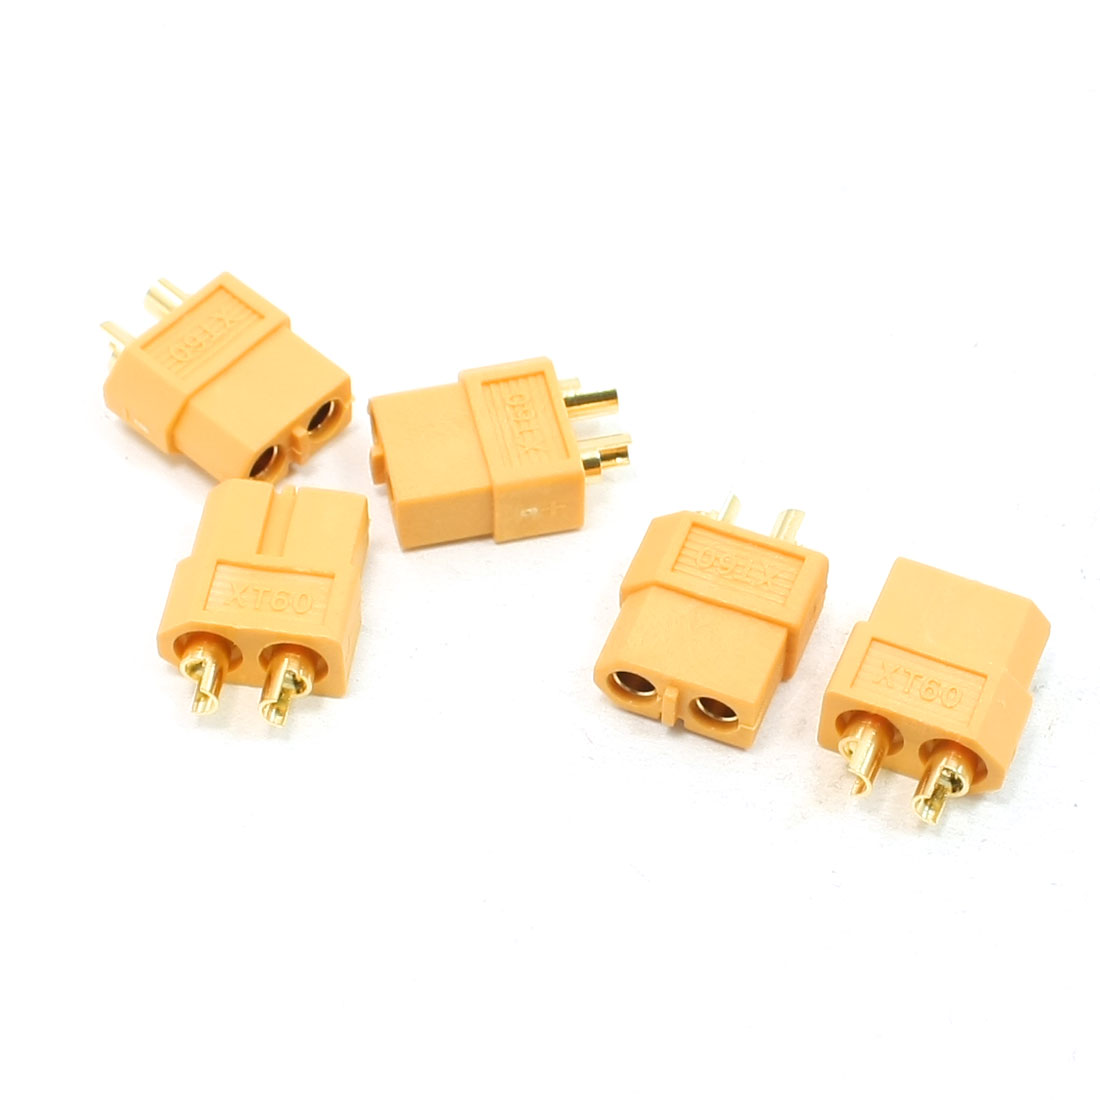 Replacing RC Battery S713 Model XT60 Plug Male Connector 5 Pcs